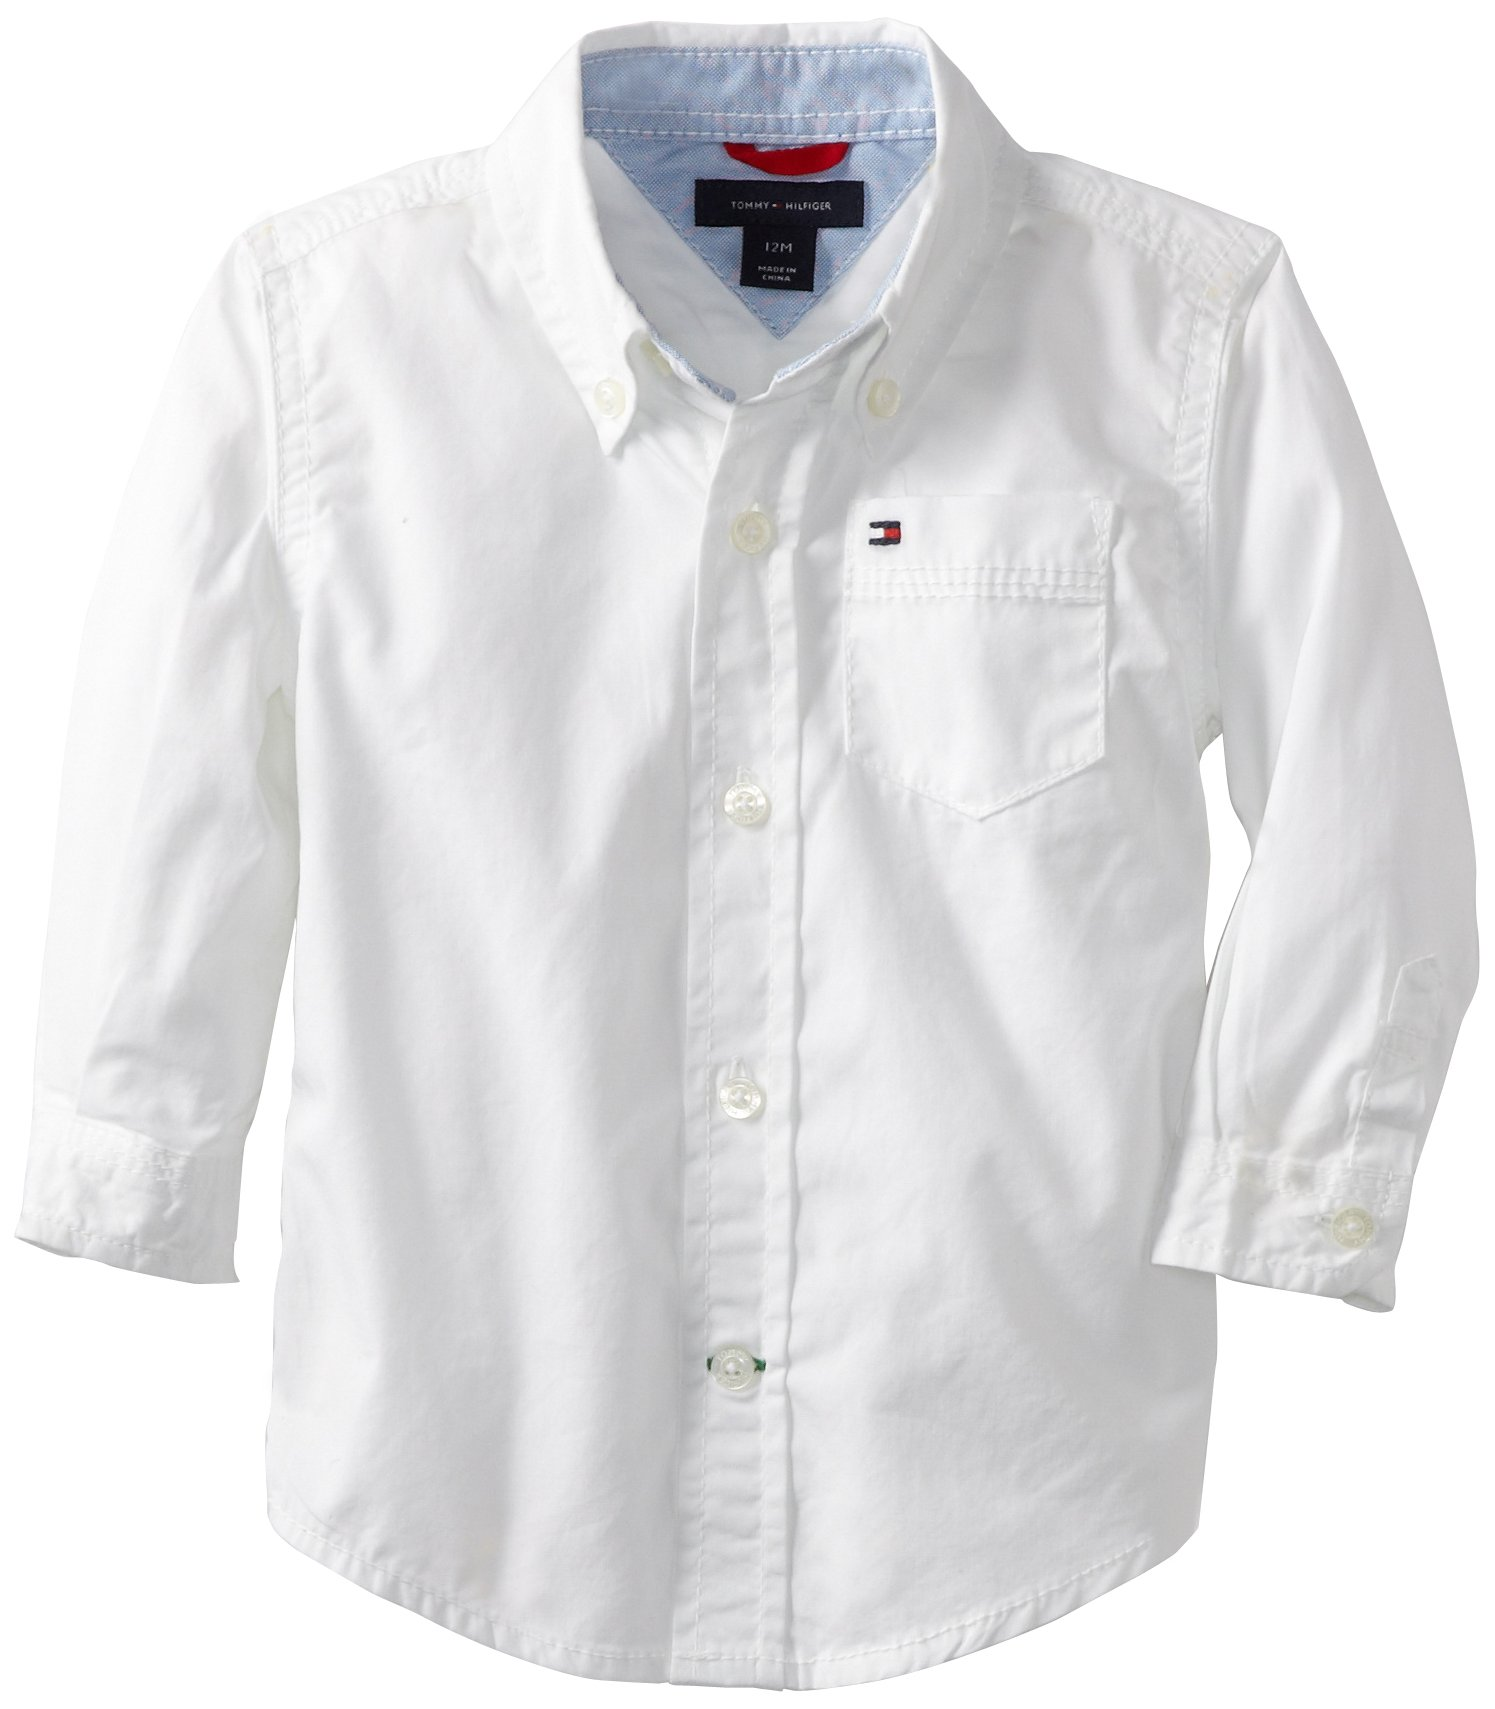 Tommy Hilfiger Baby Boys' Classic Shirt, White, 24 Months by Tommy Hilfiger